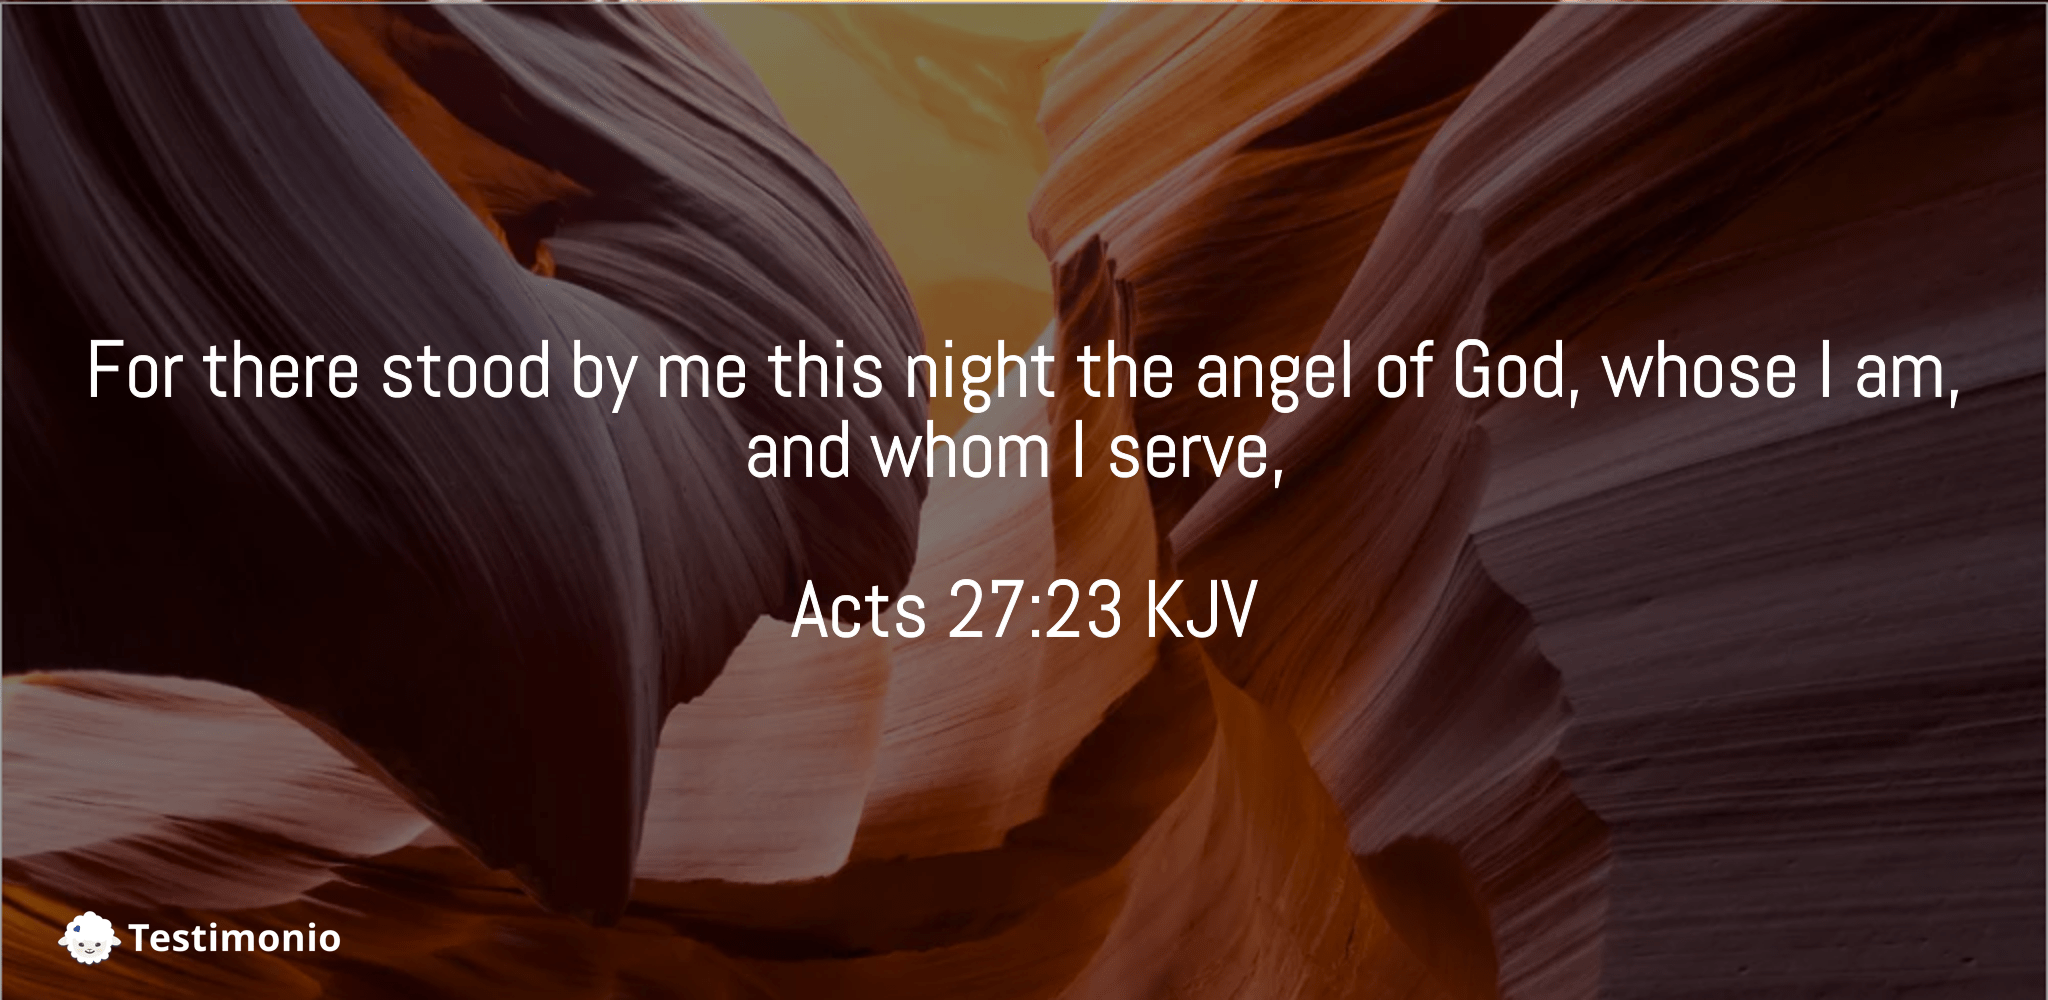 Acts 27:23